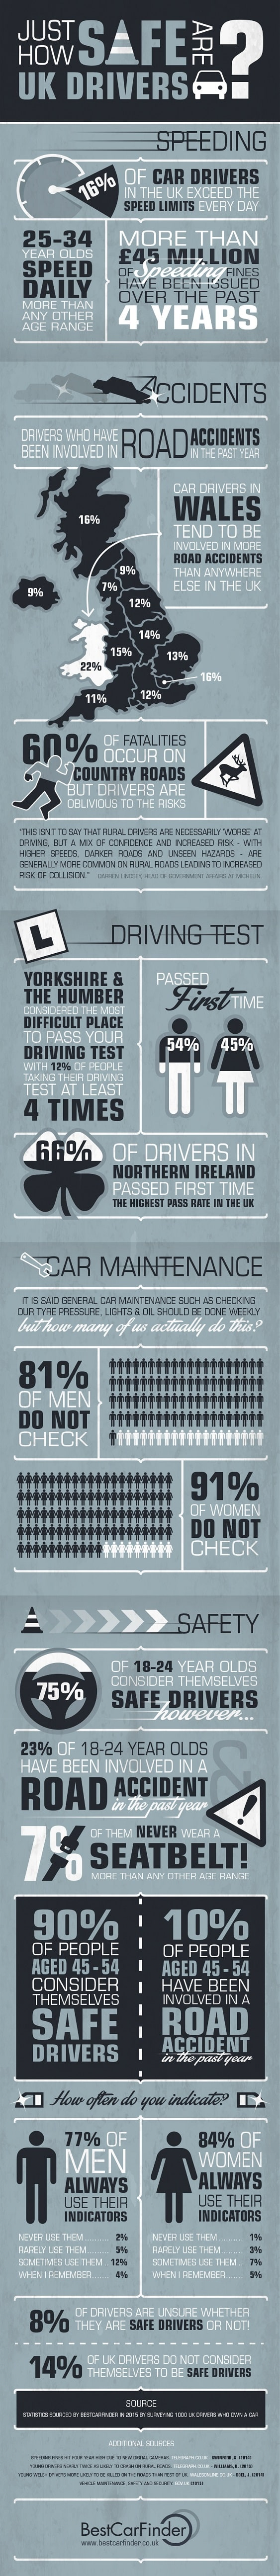 how safe are uk drivers